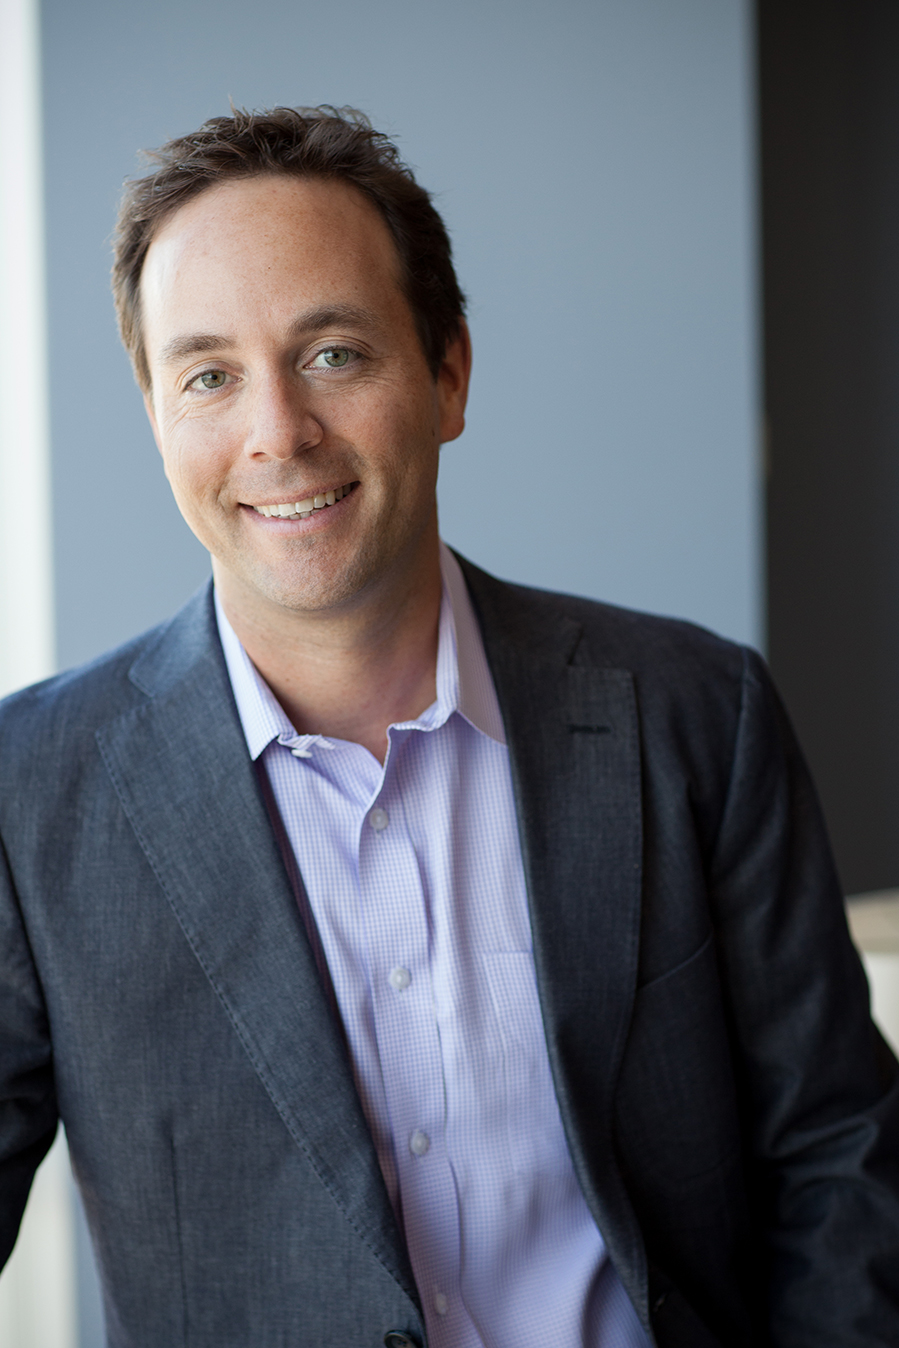 Spencer Rascoff, CEO of Zillow Group